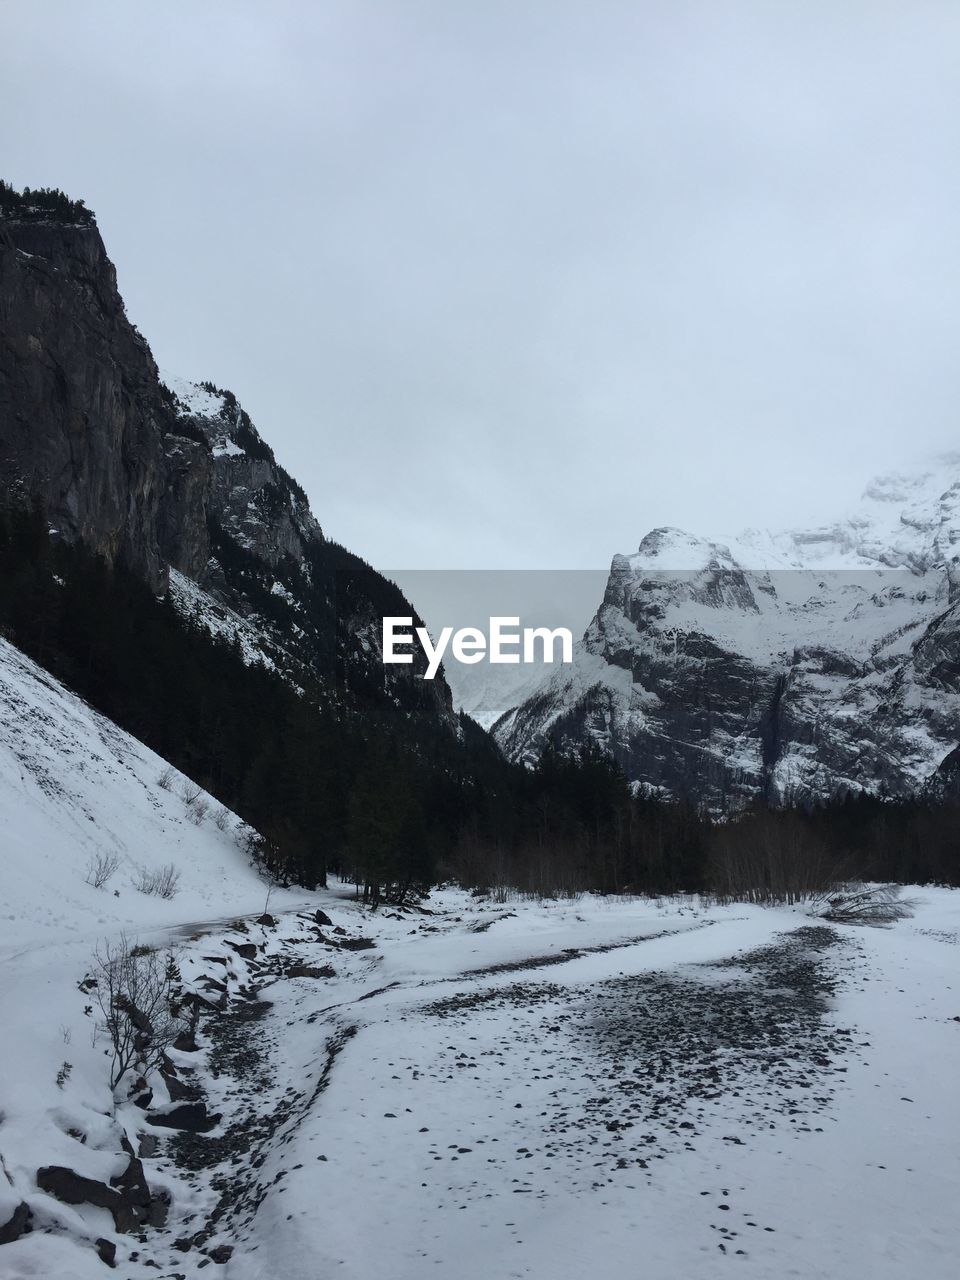 snow, winter, cold temperature, mountain, beauty in nature, sky, scenics - nature, tranquil scene, tranquility, nature, no people, environment, snowcapped mountain, day, mountain range, non-urban scene, landscape, cloud - sky, frozen, outdoors, mountain peak